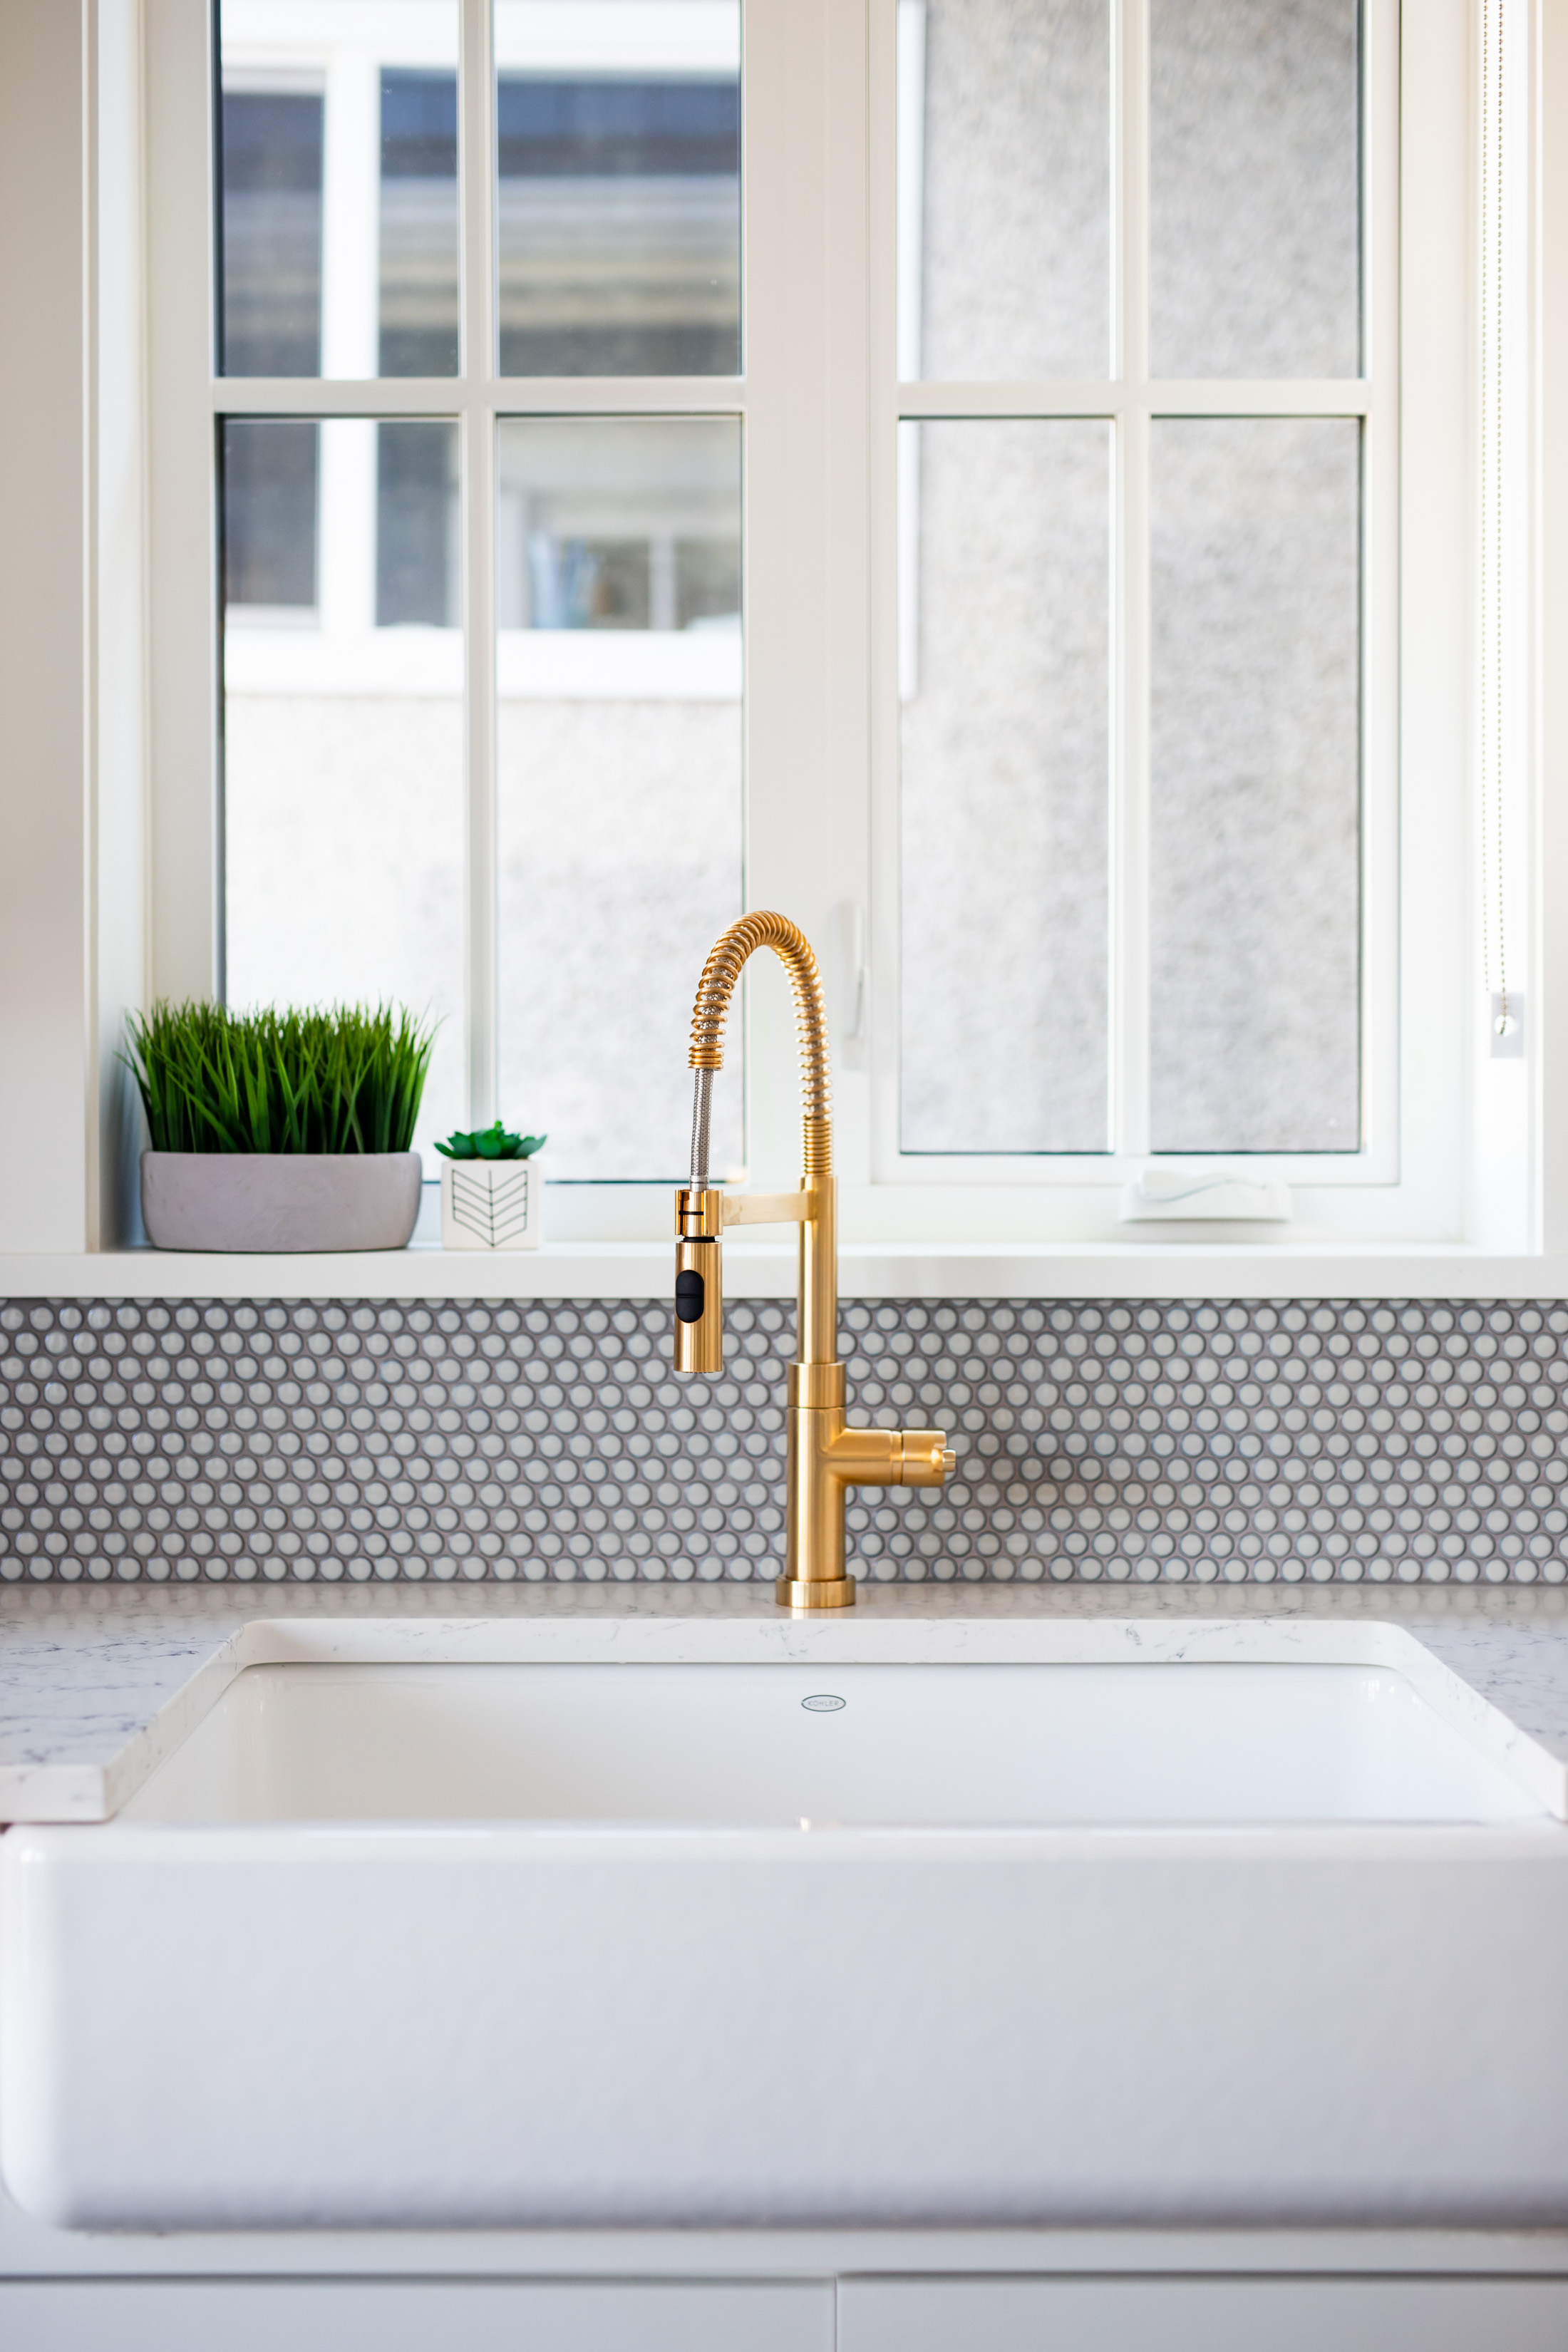 apron sink and gold faucet